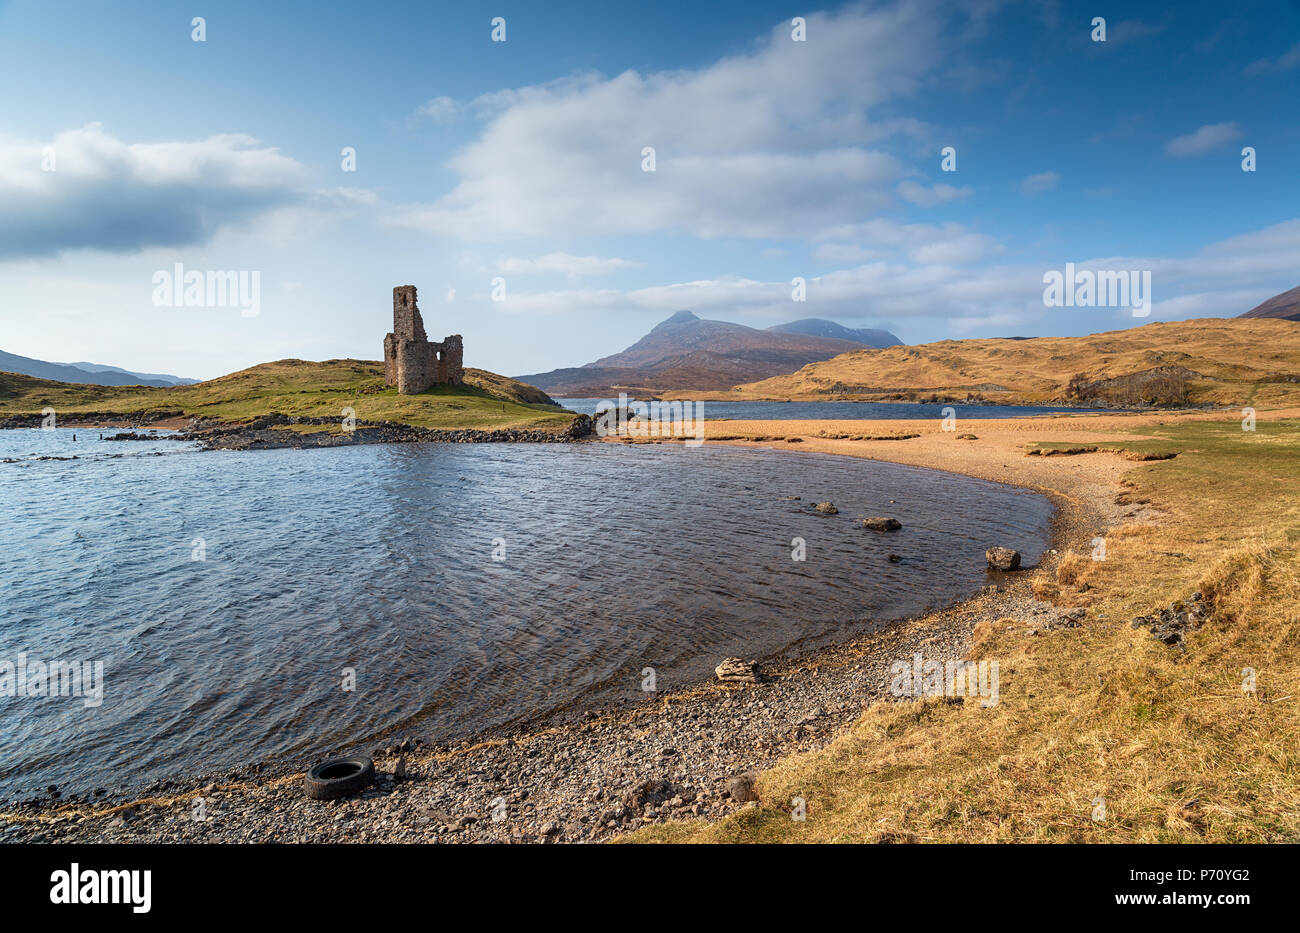 The ruins of Ardvreck Castle on Loch Assynt in Scotland - Stock Image